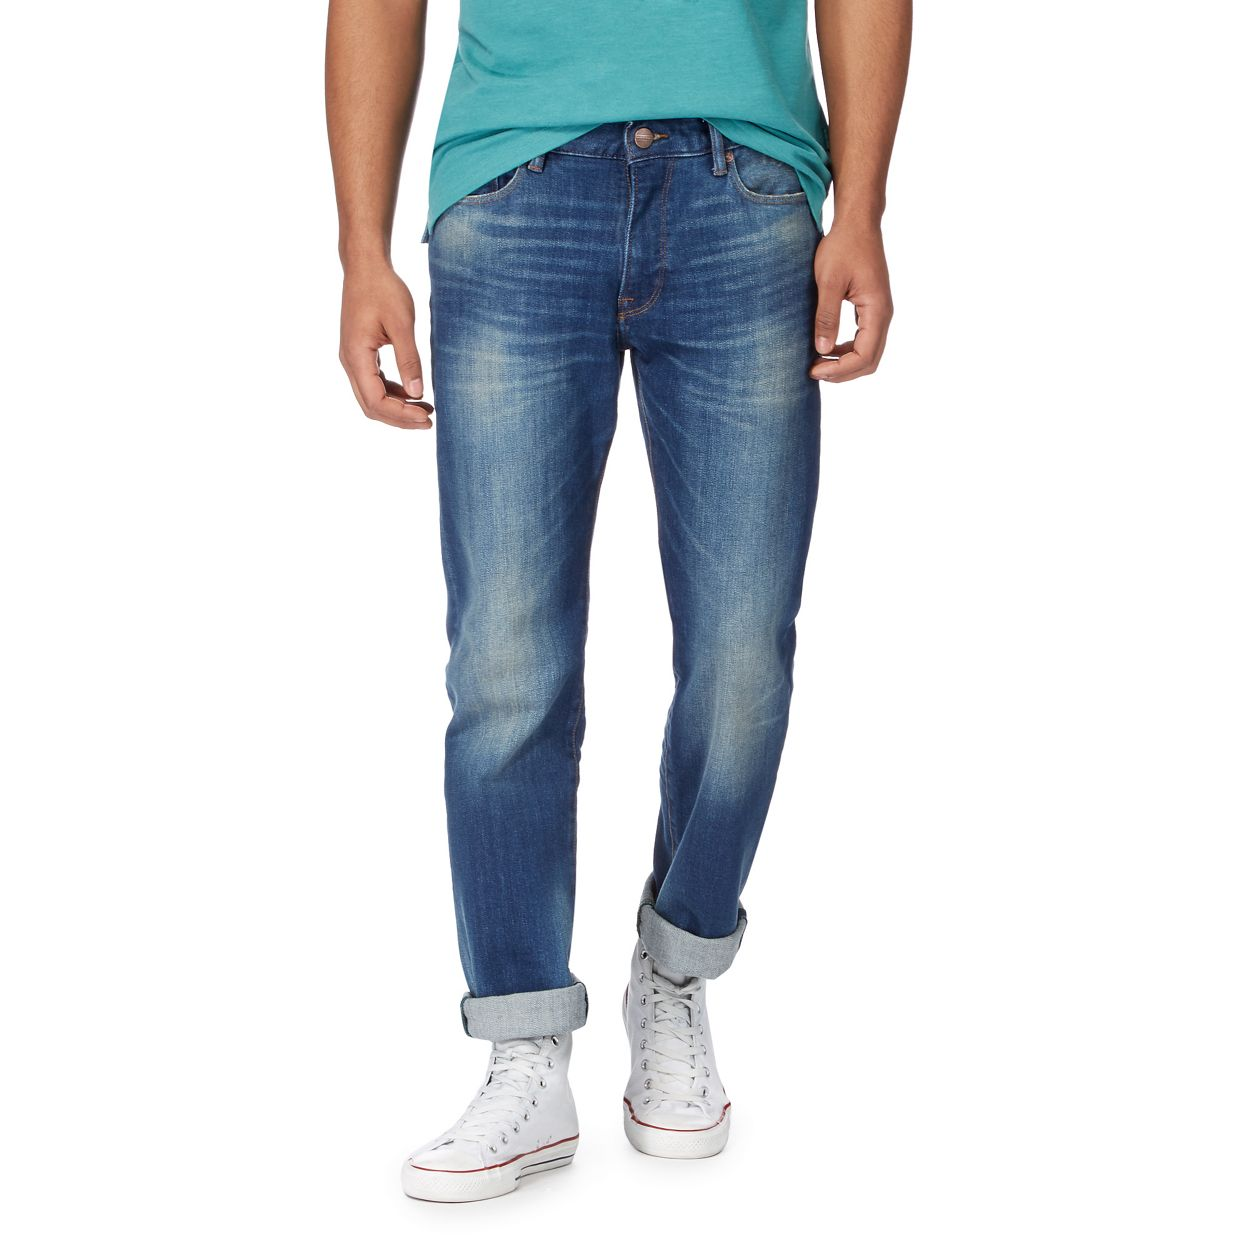 Racing Green Mid Blue Blue mid wash straight leg jeans